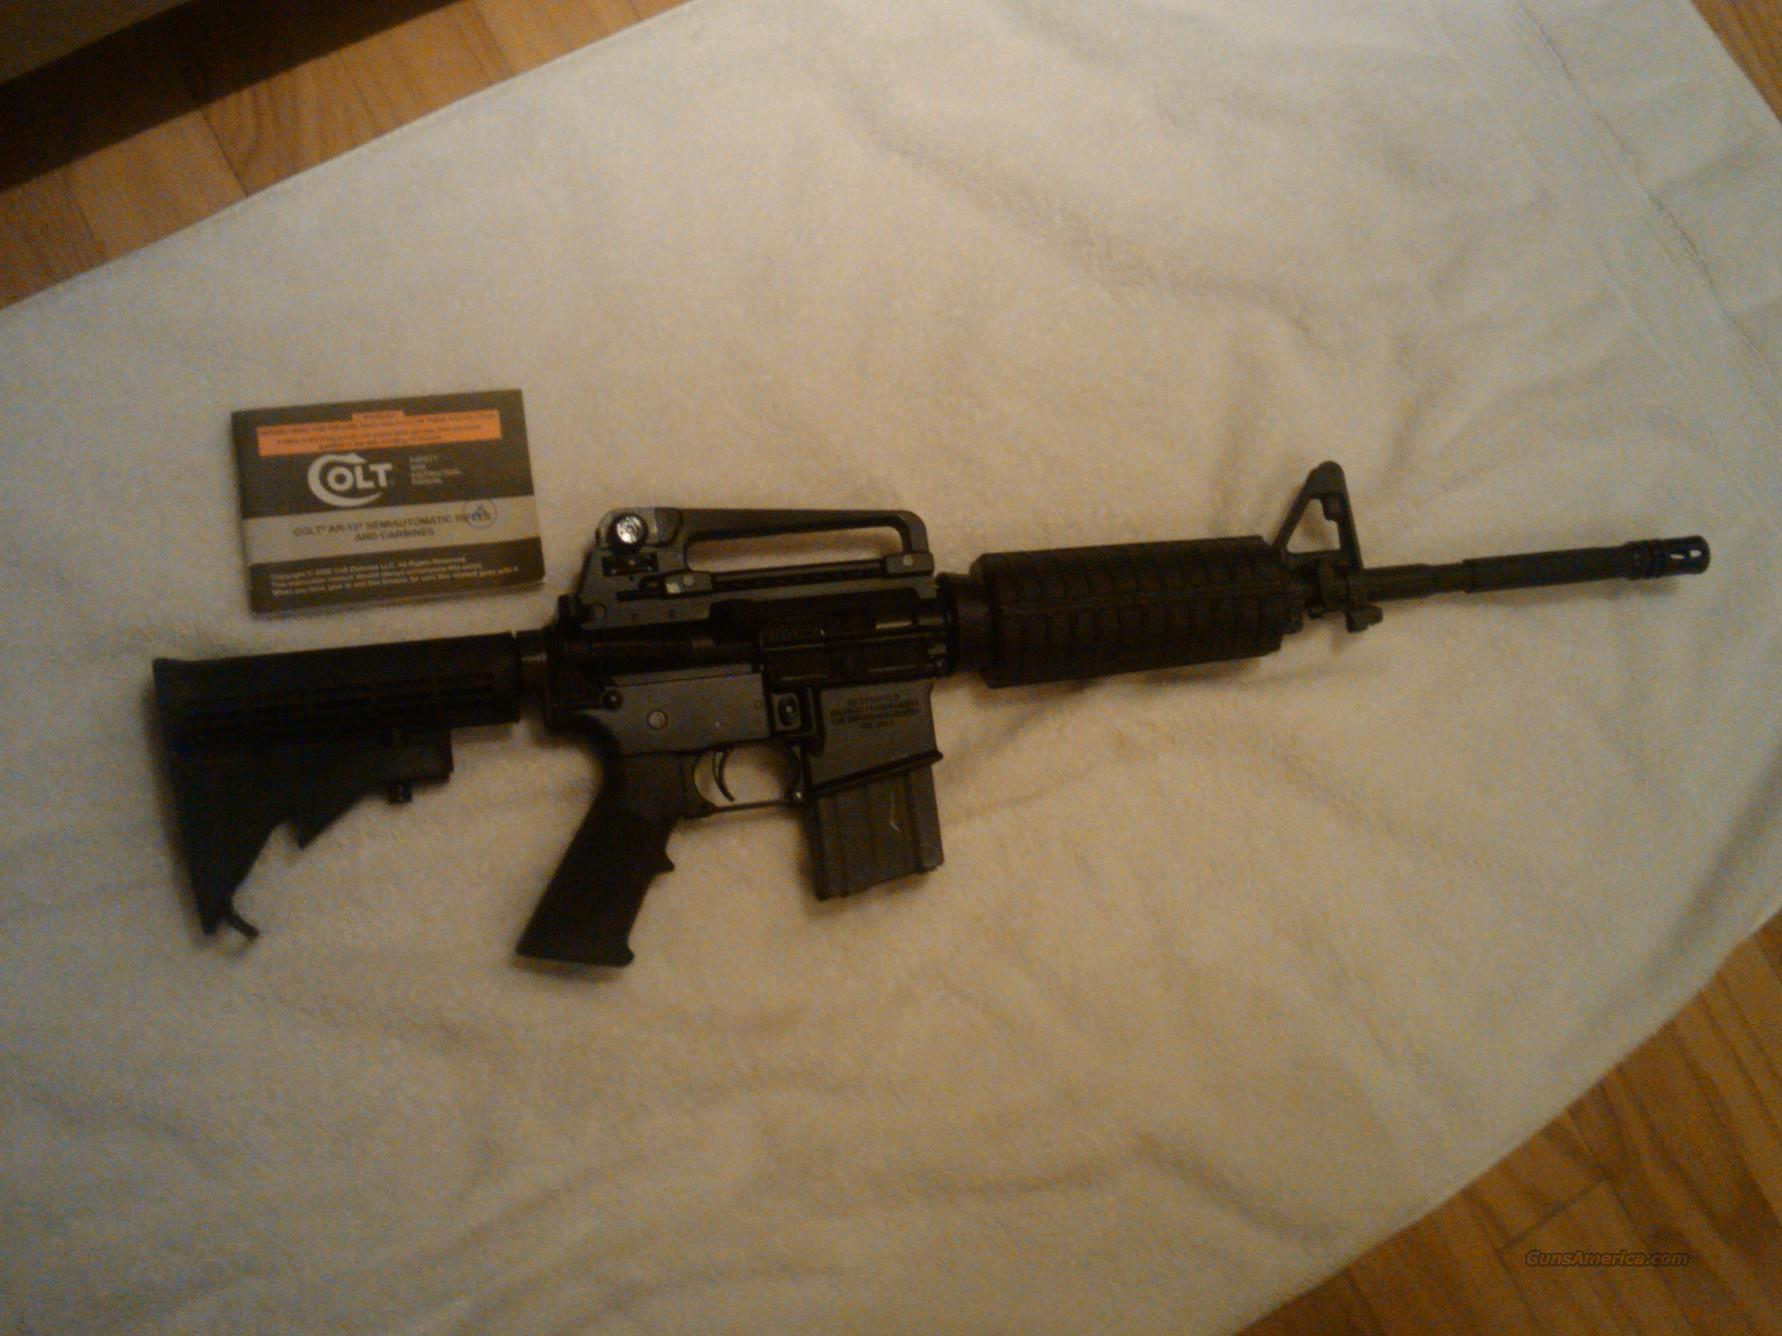 Colt AR-15 Brand New  Guns > Rifles > Colt Military/Tactical Rifles